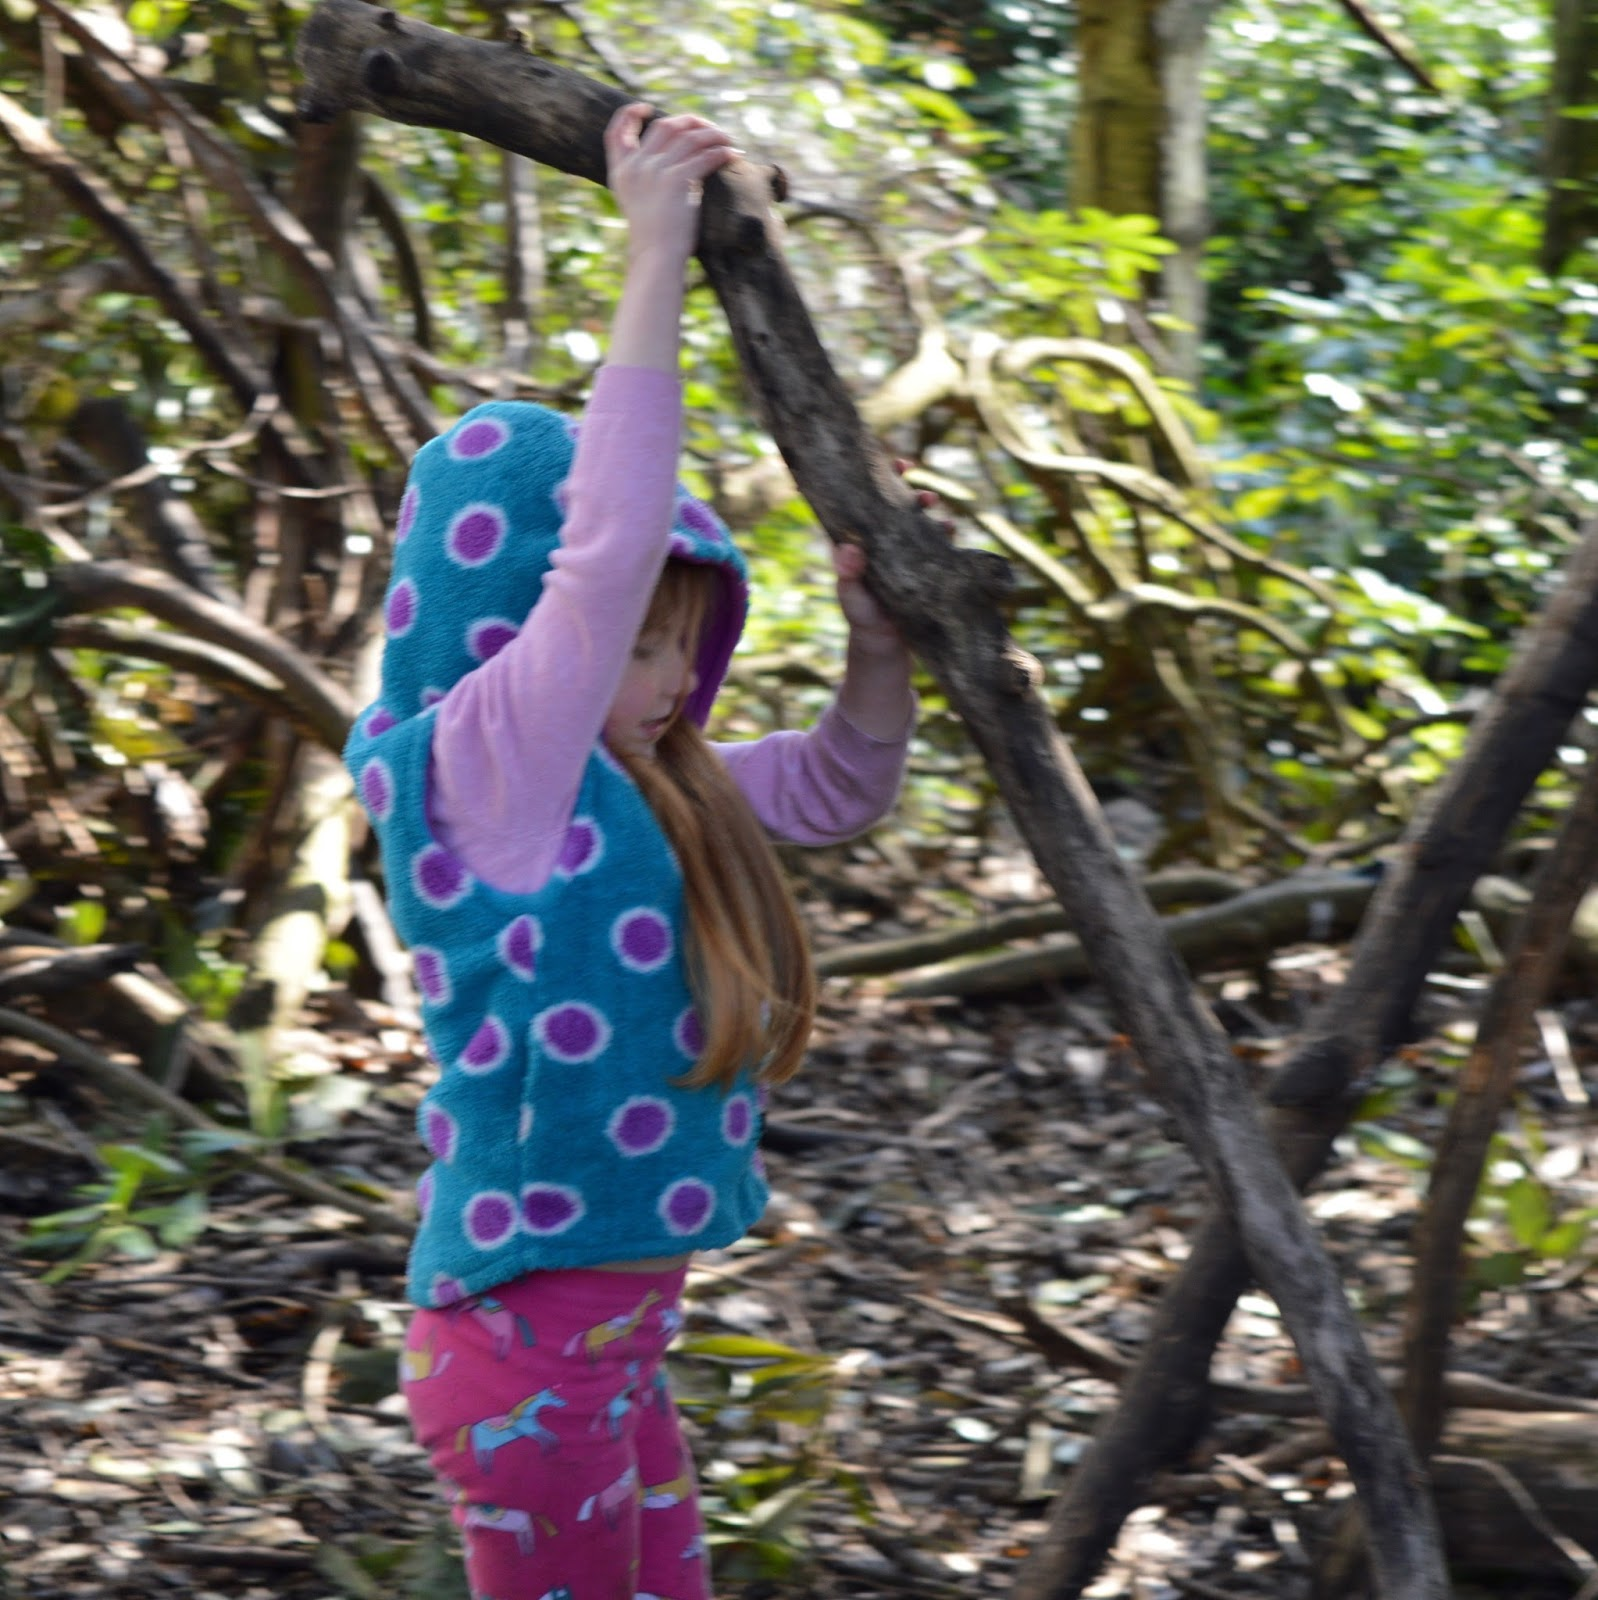 Beamish Wild | School Holiday Club & Activities in County Durham | North East England - den building task